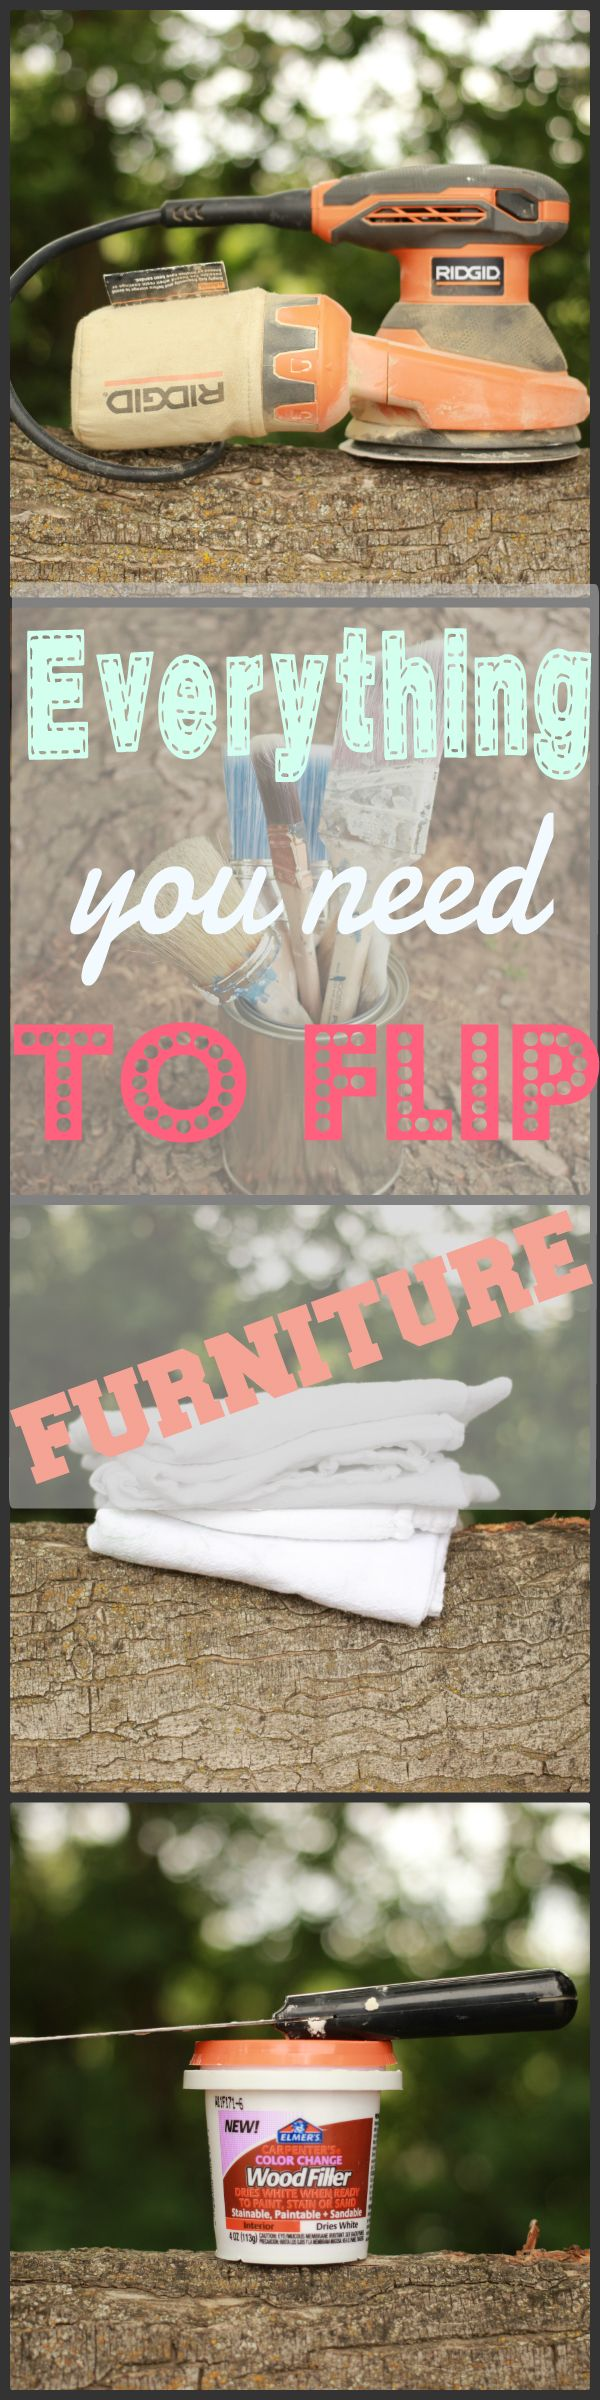 All the tools you need to start flipping furniture!